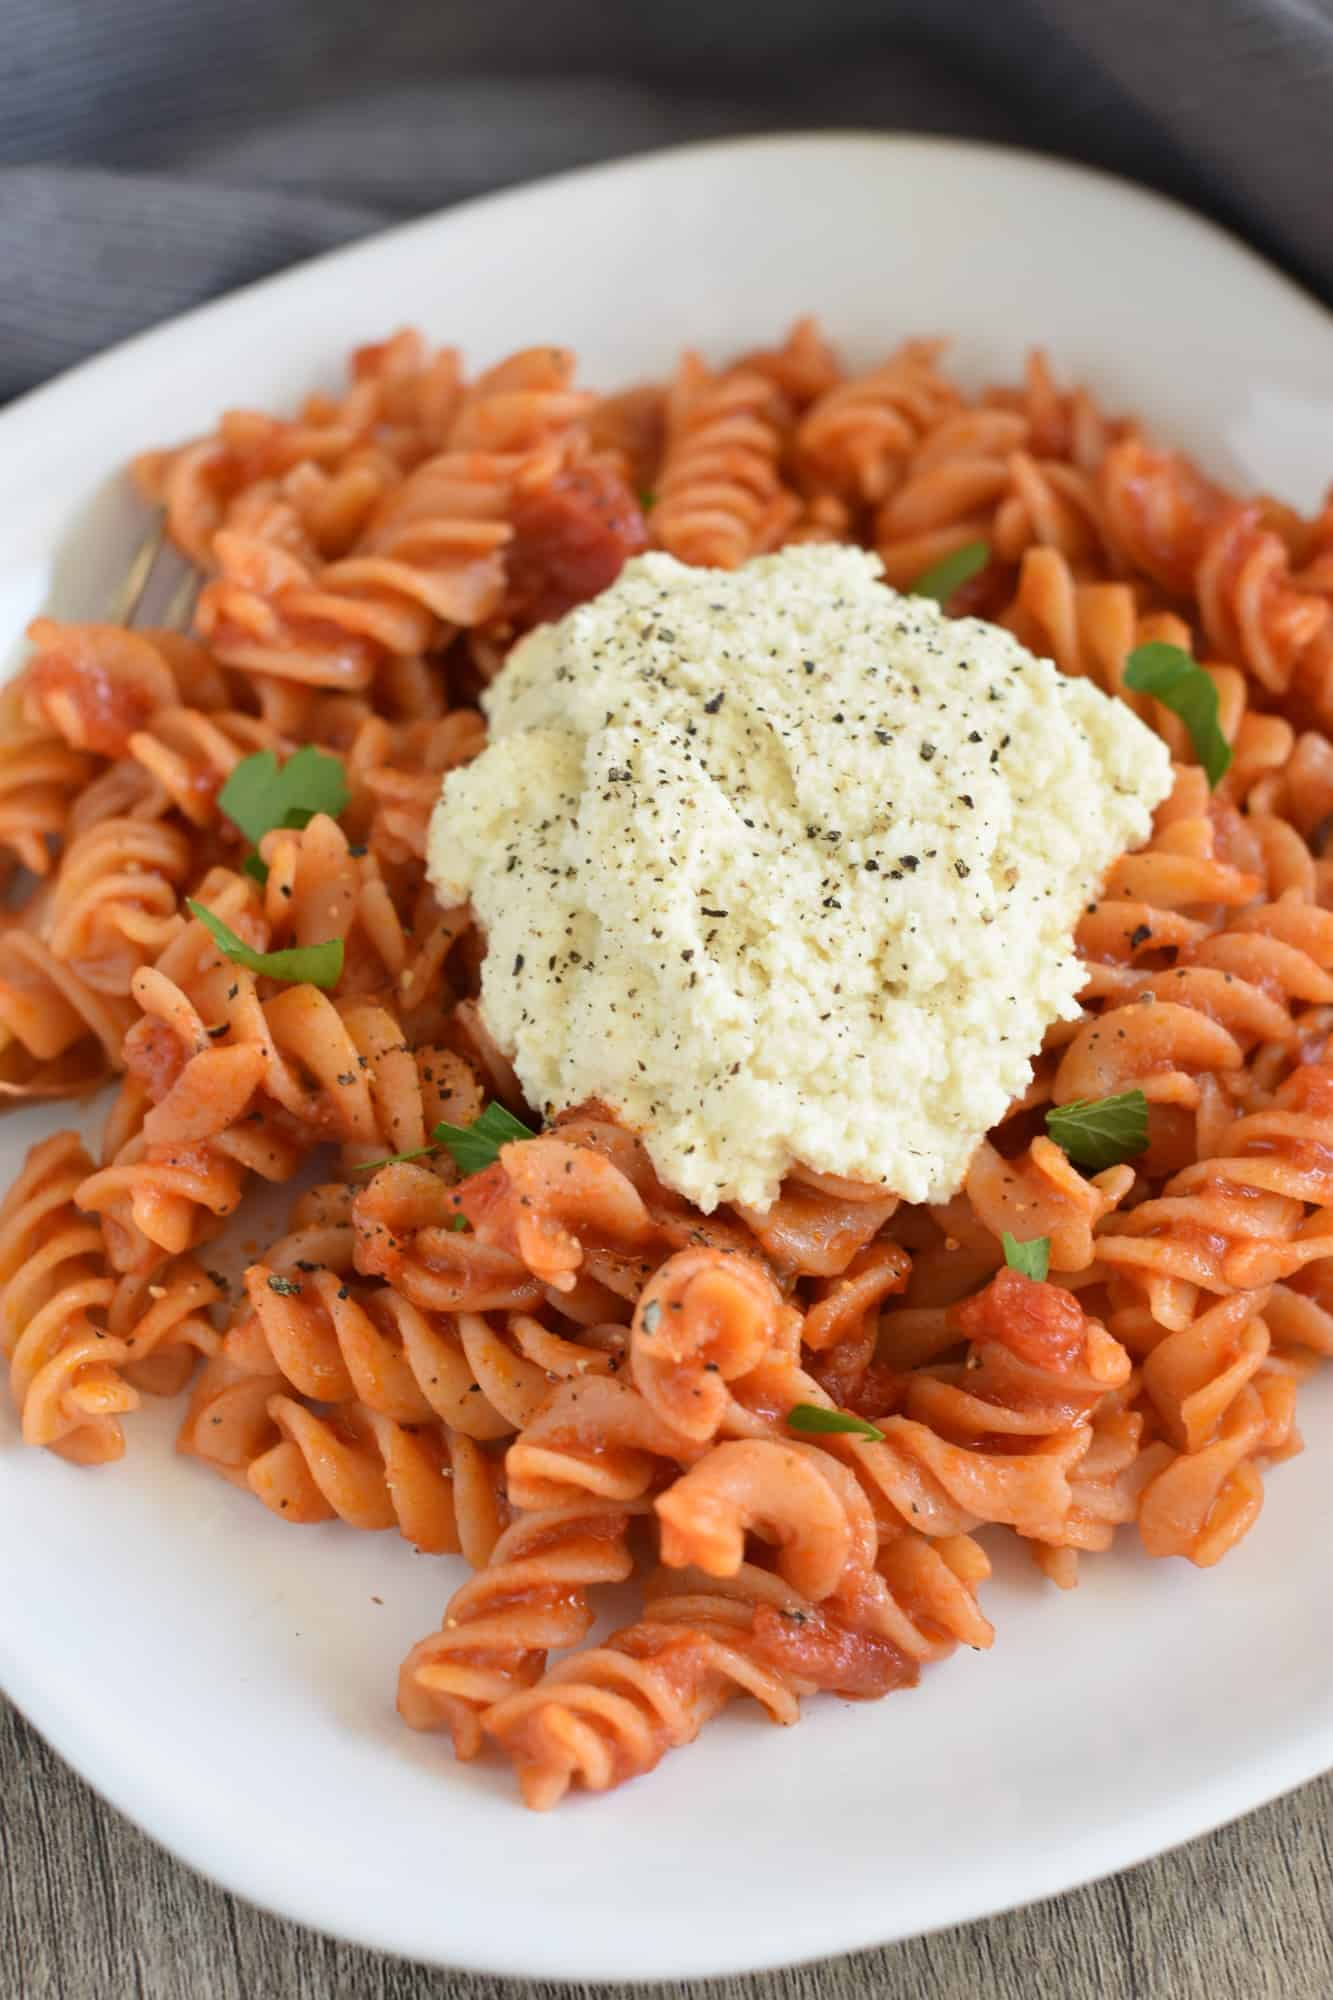 rotini pasta with almond ricotta on a white plate